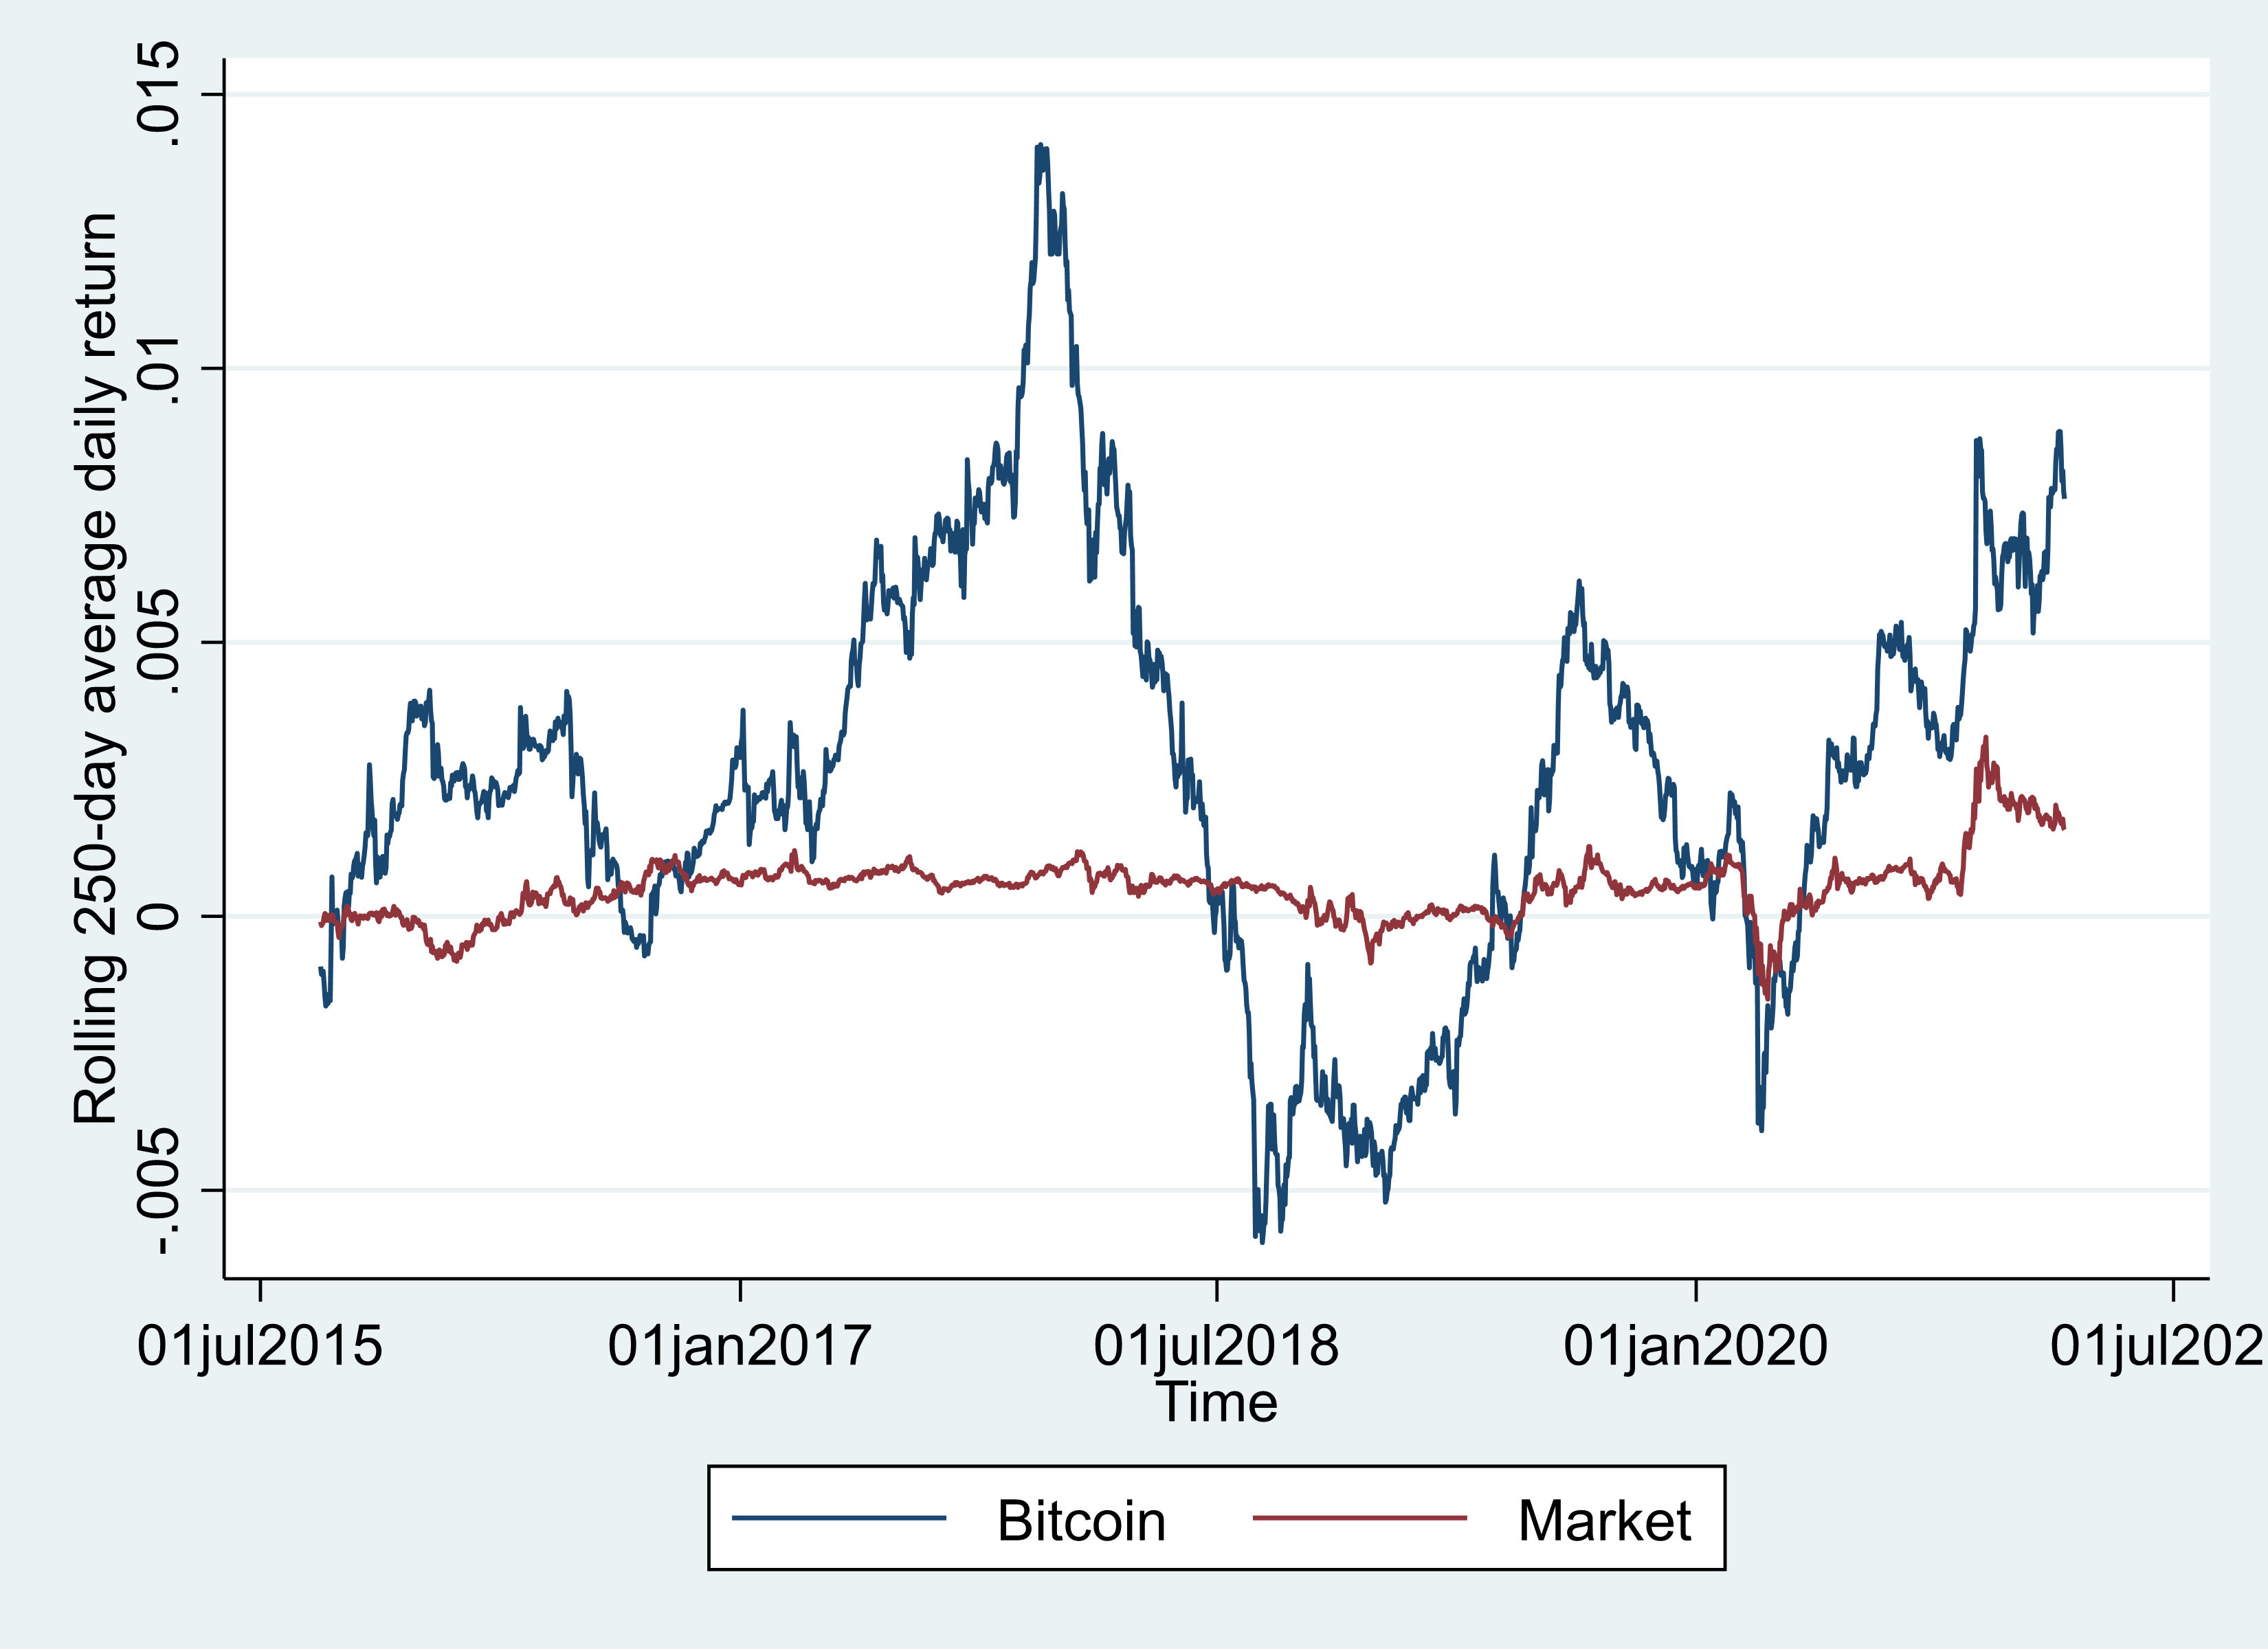 Figure 1 Rolling 250-day average daily return for Bitcoin.png